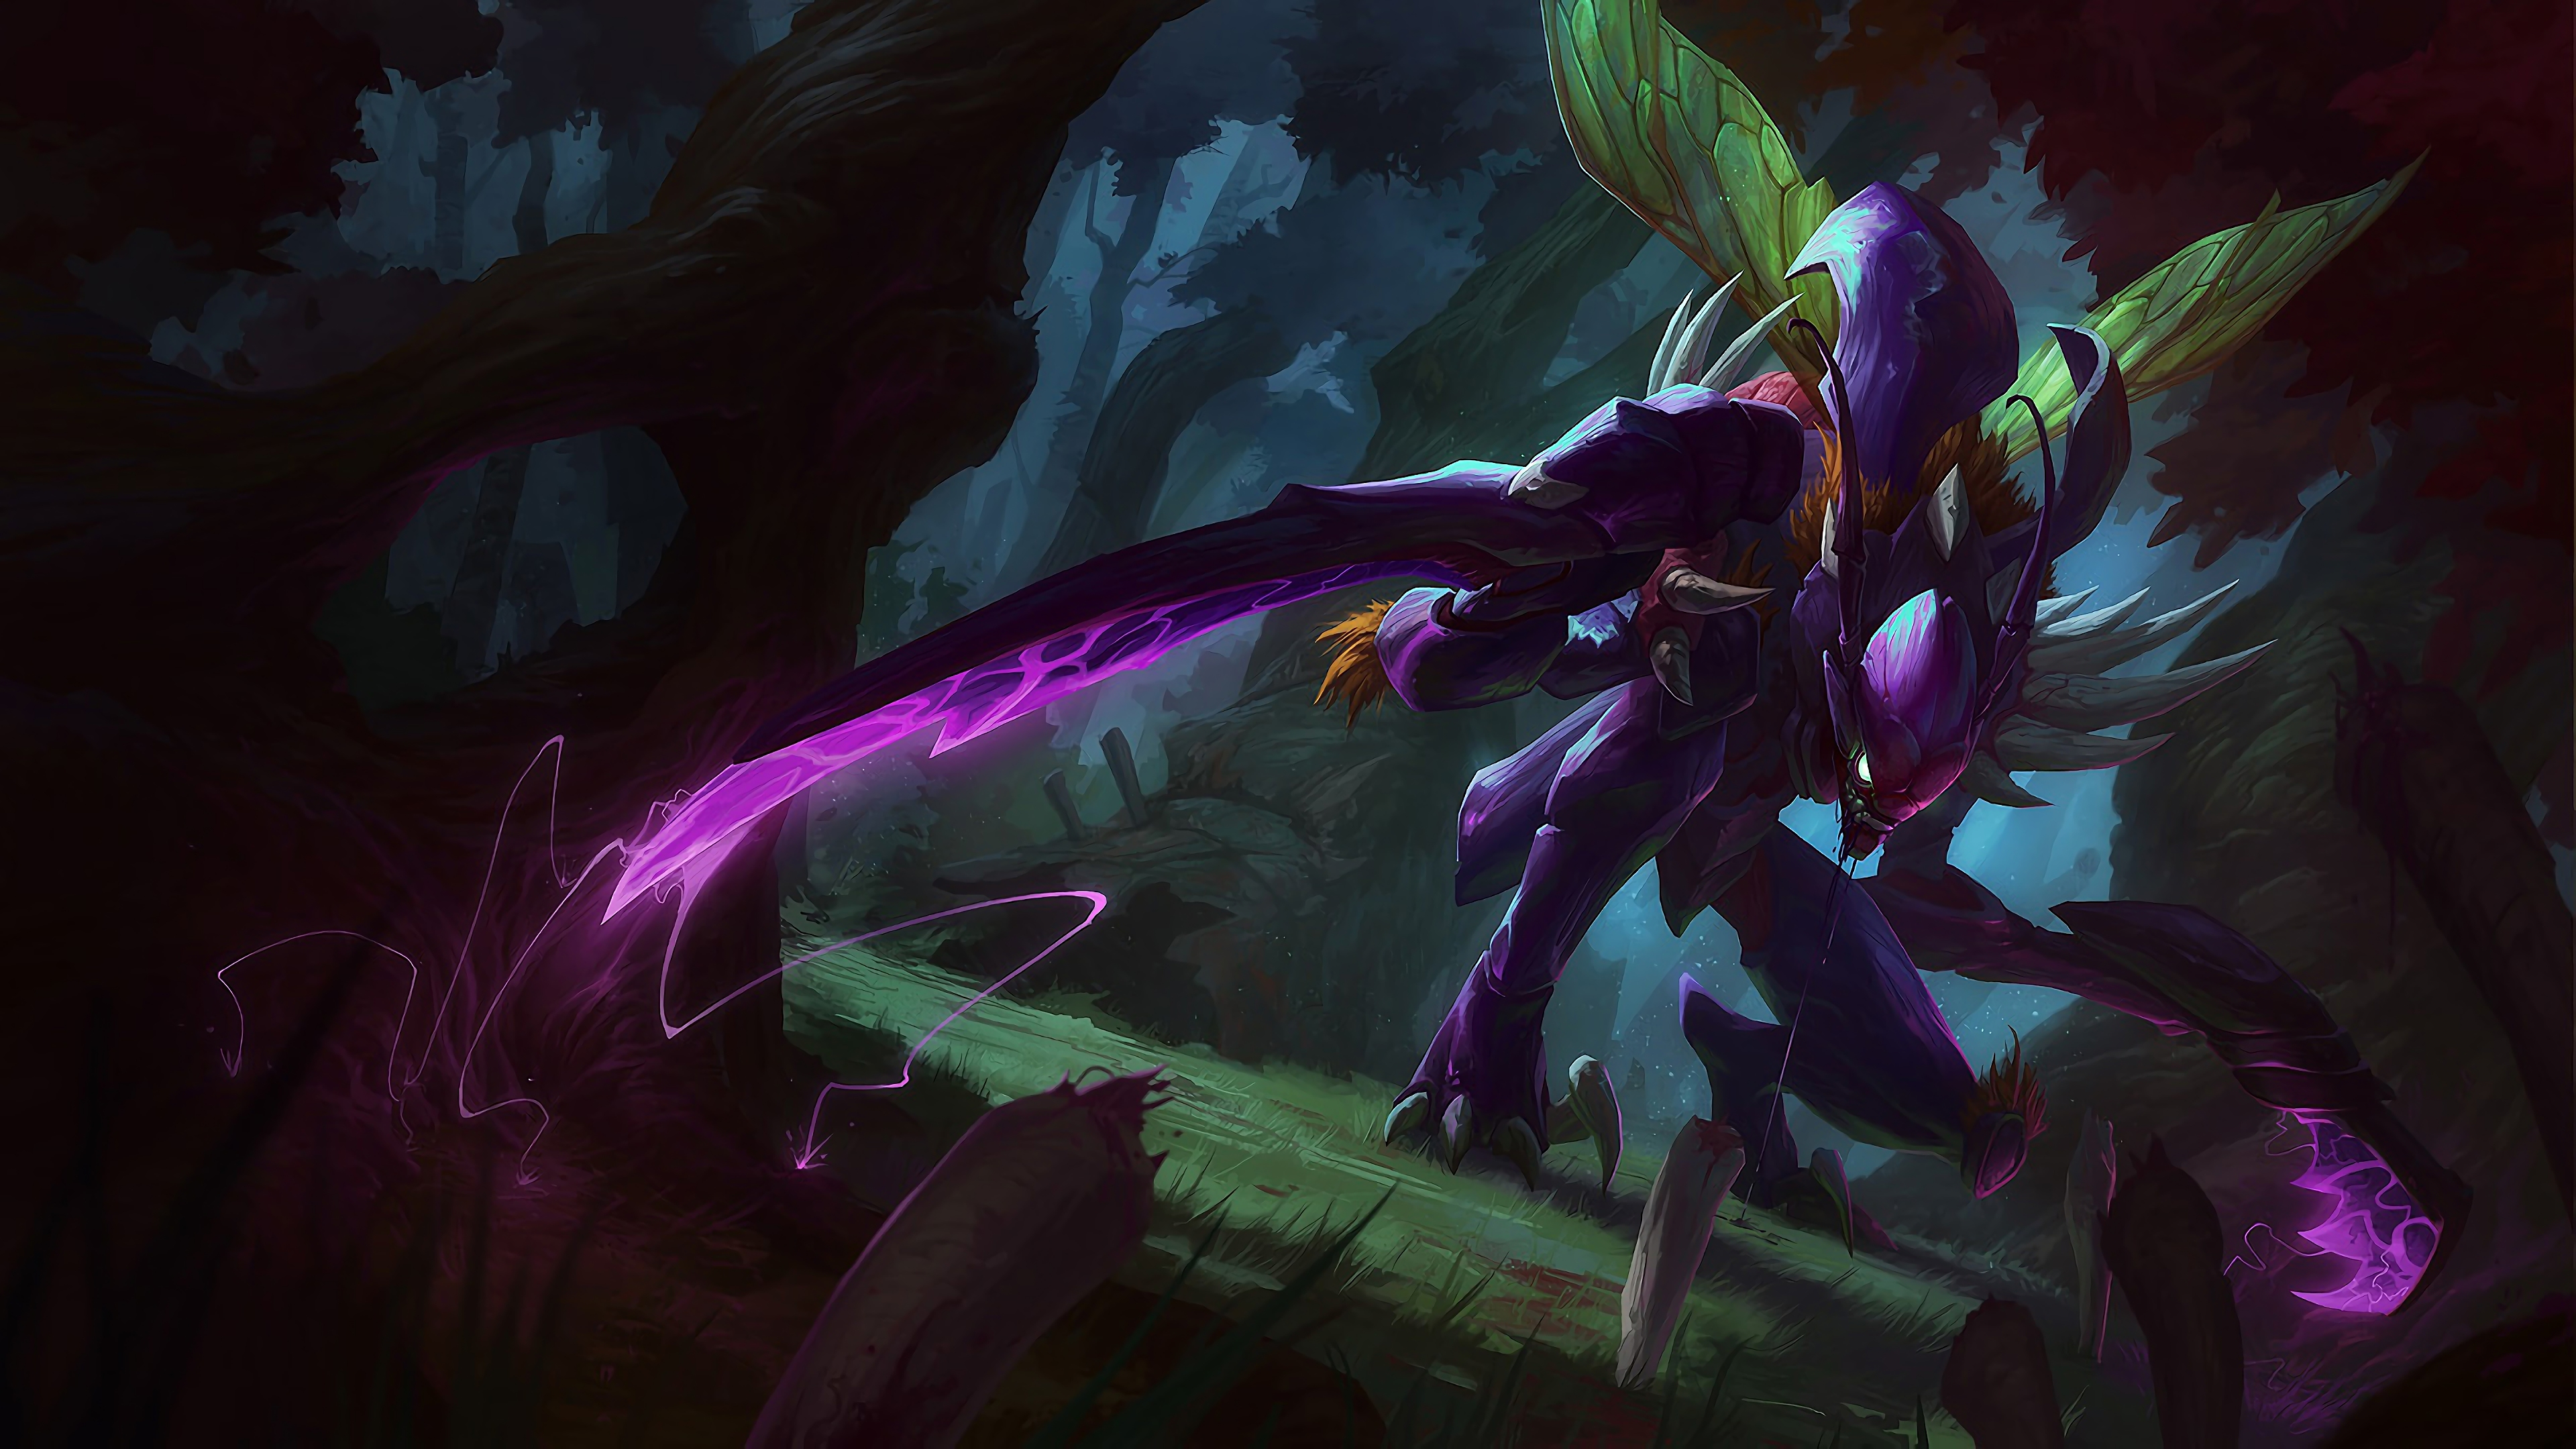 kha zix lol splash art league of legends lol 1574101888 - Kha'Zix LoL Splash Art League of Legends lol - league of legends, Kha'Zix